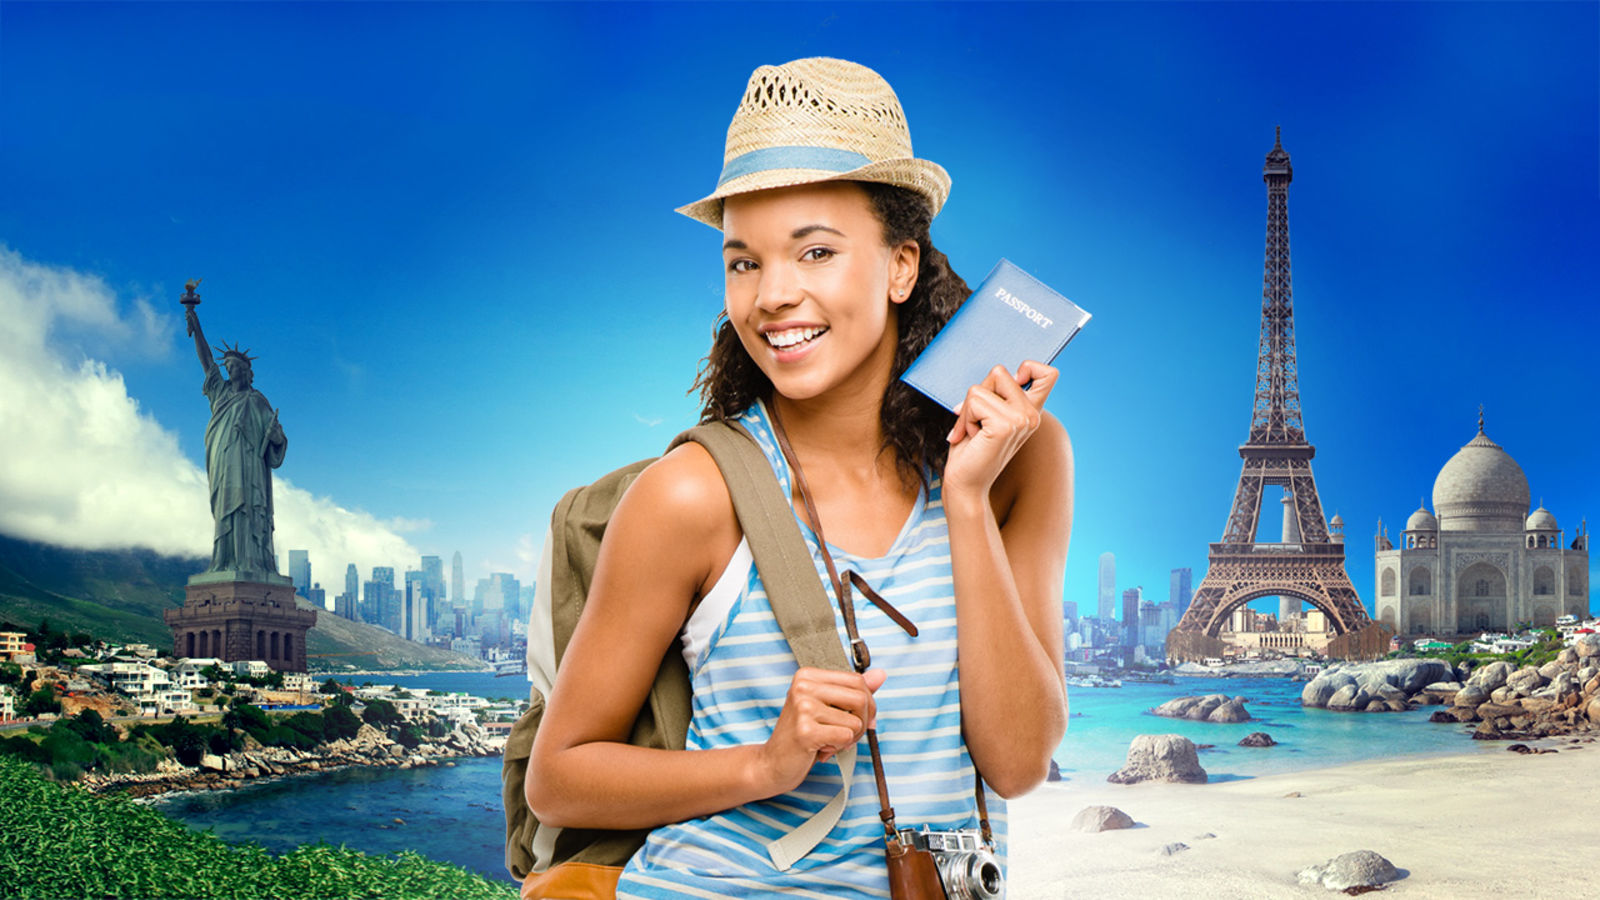 Be Smart And Follow These Tips On Travel